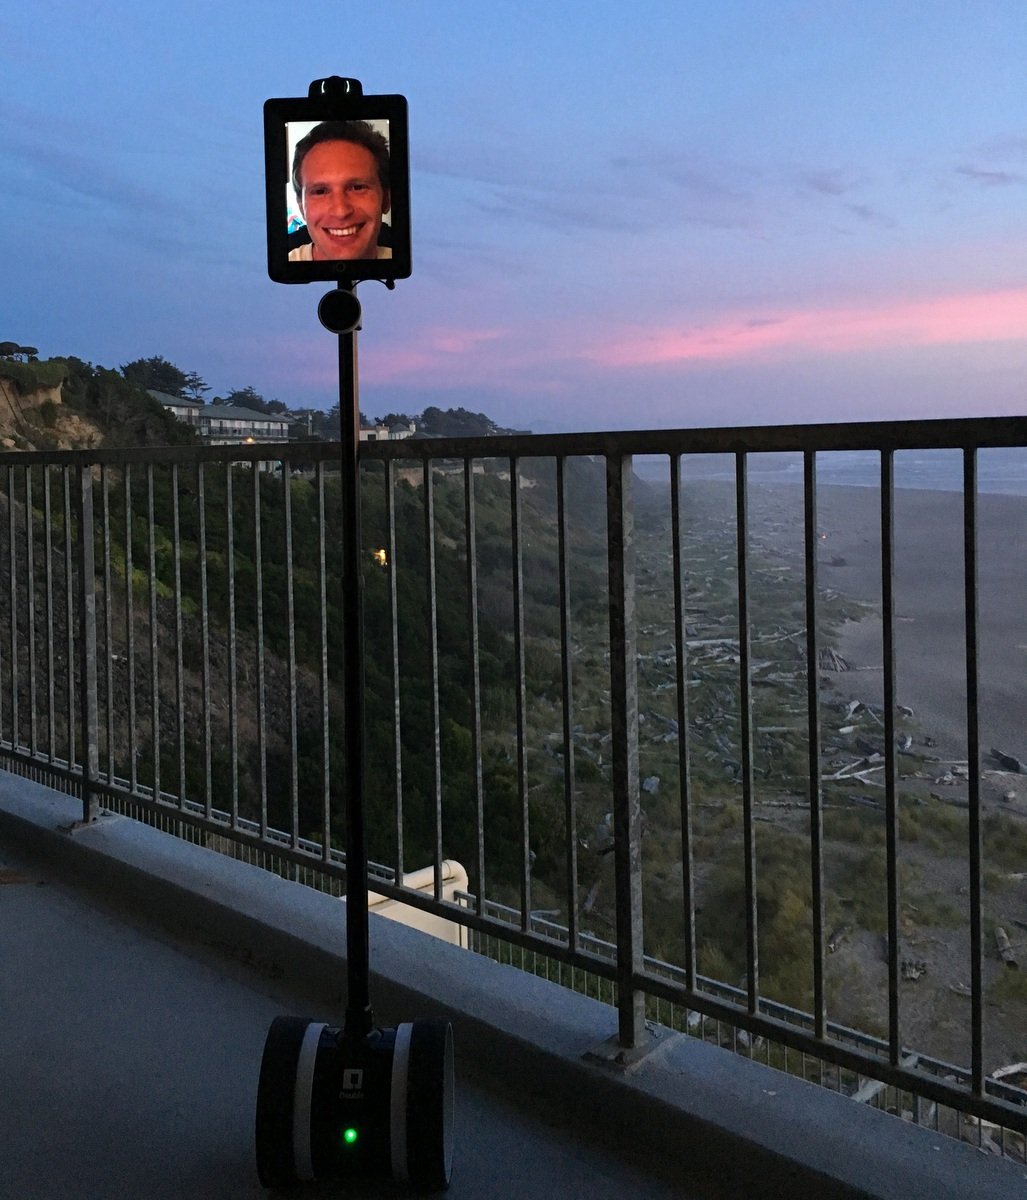 Double 2 telepresence robot at the beach